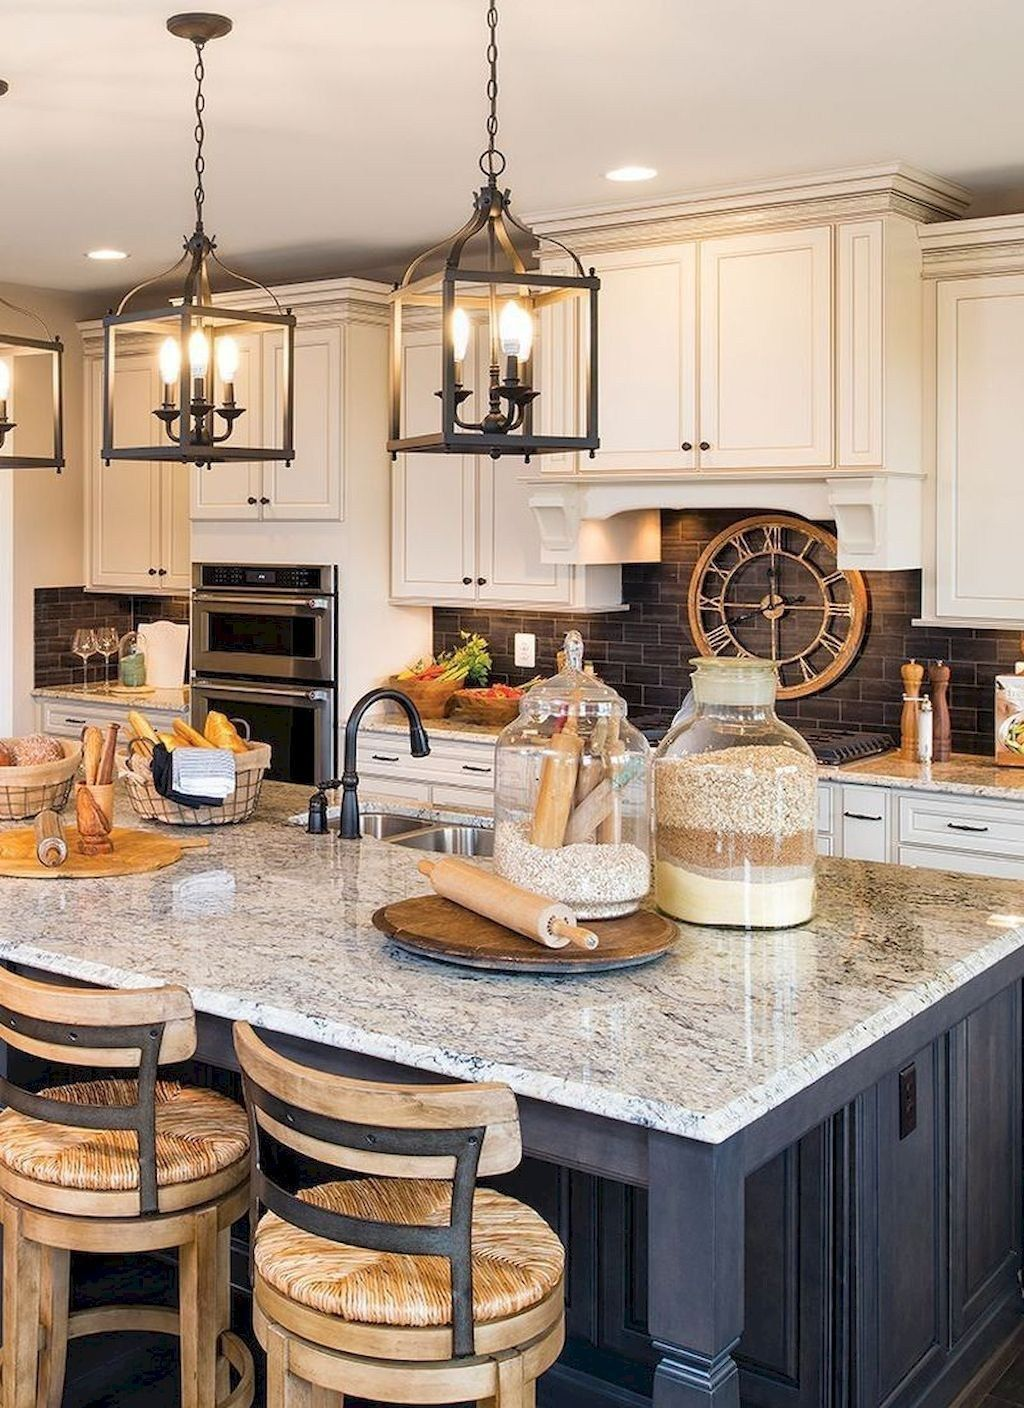 Best Beautiful Farmhouse Kitchen Makeover Ideas On A Budget 22 640 x 480